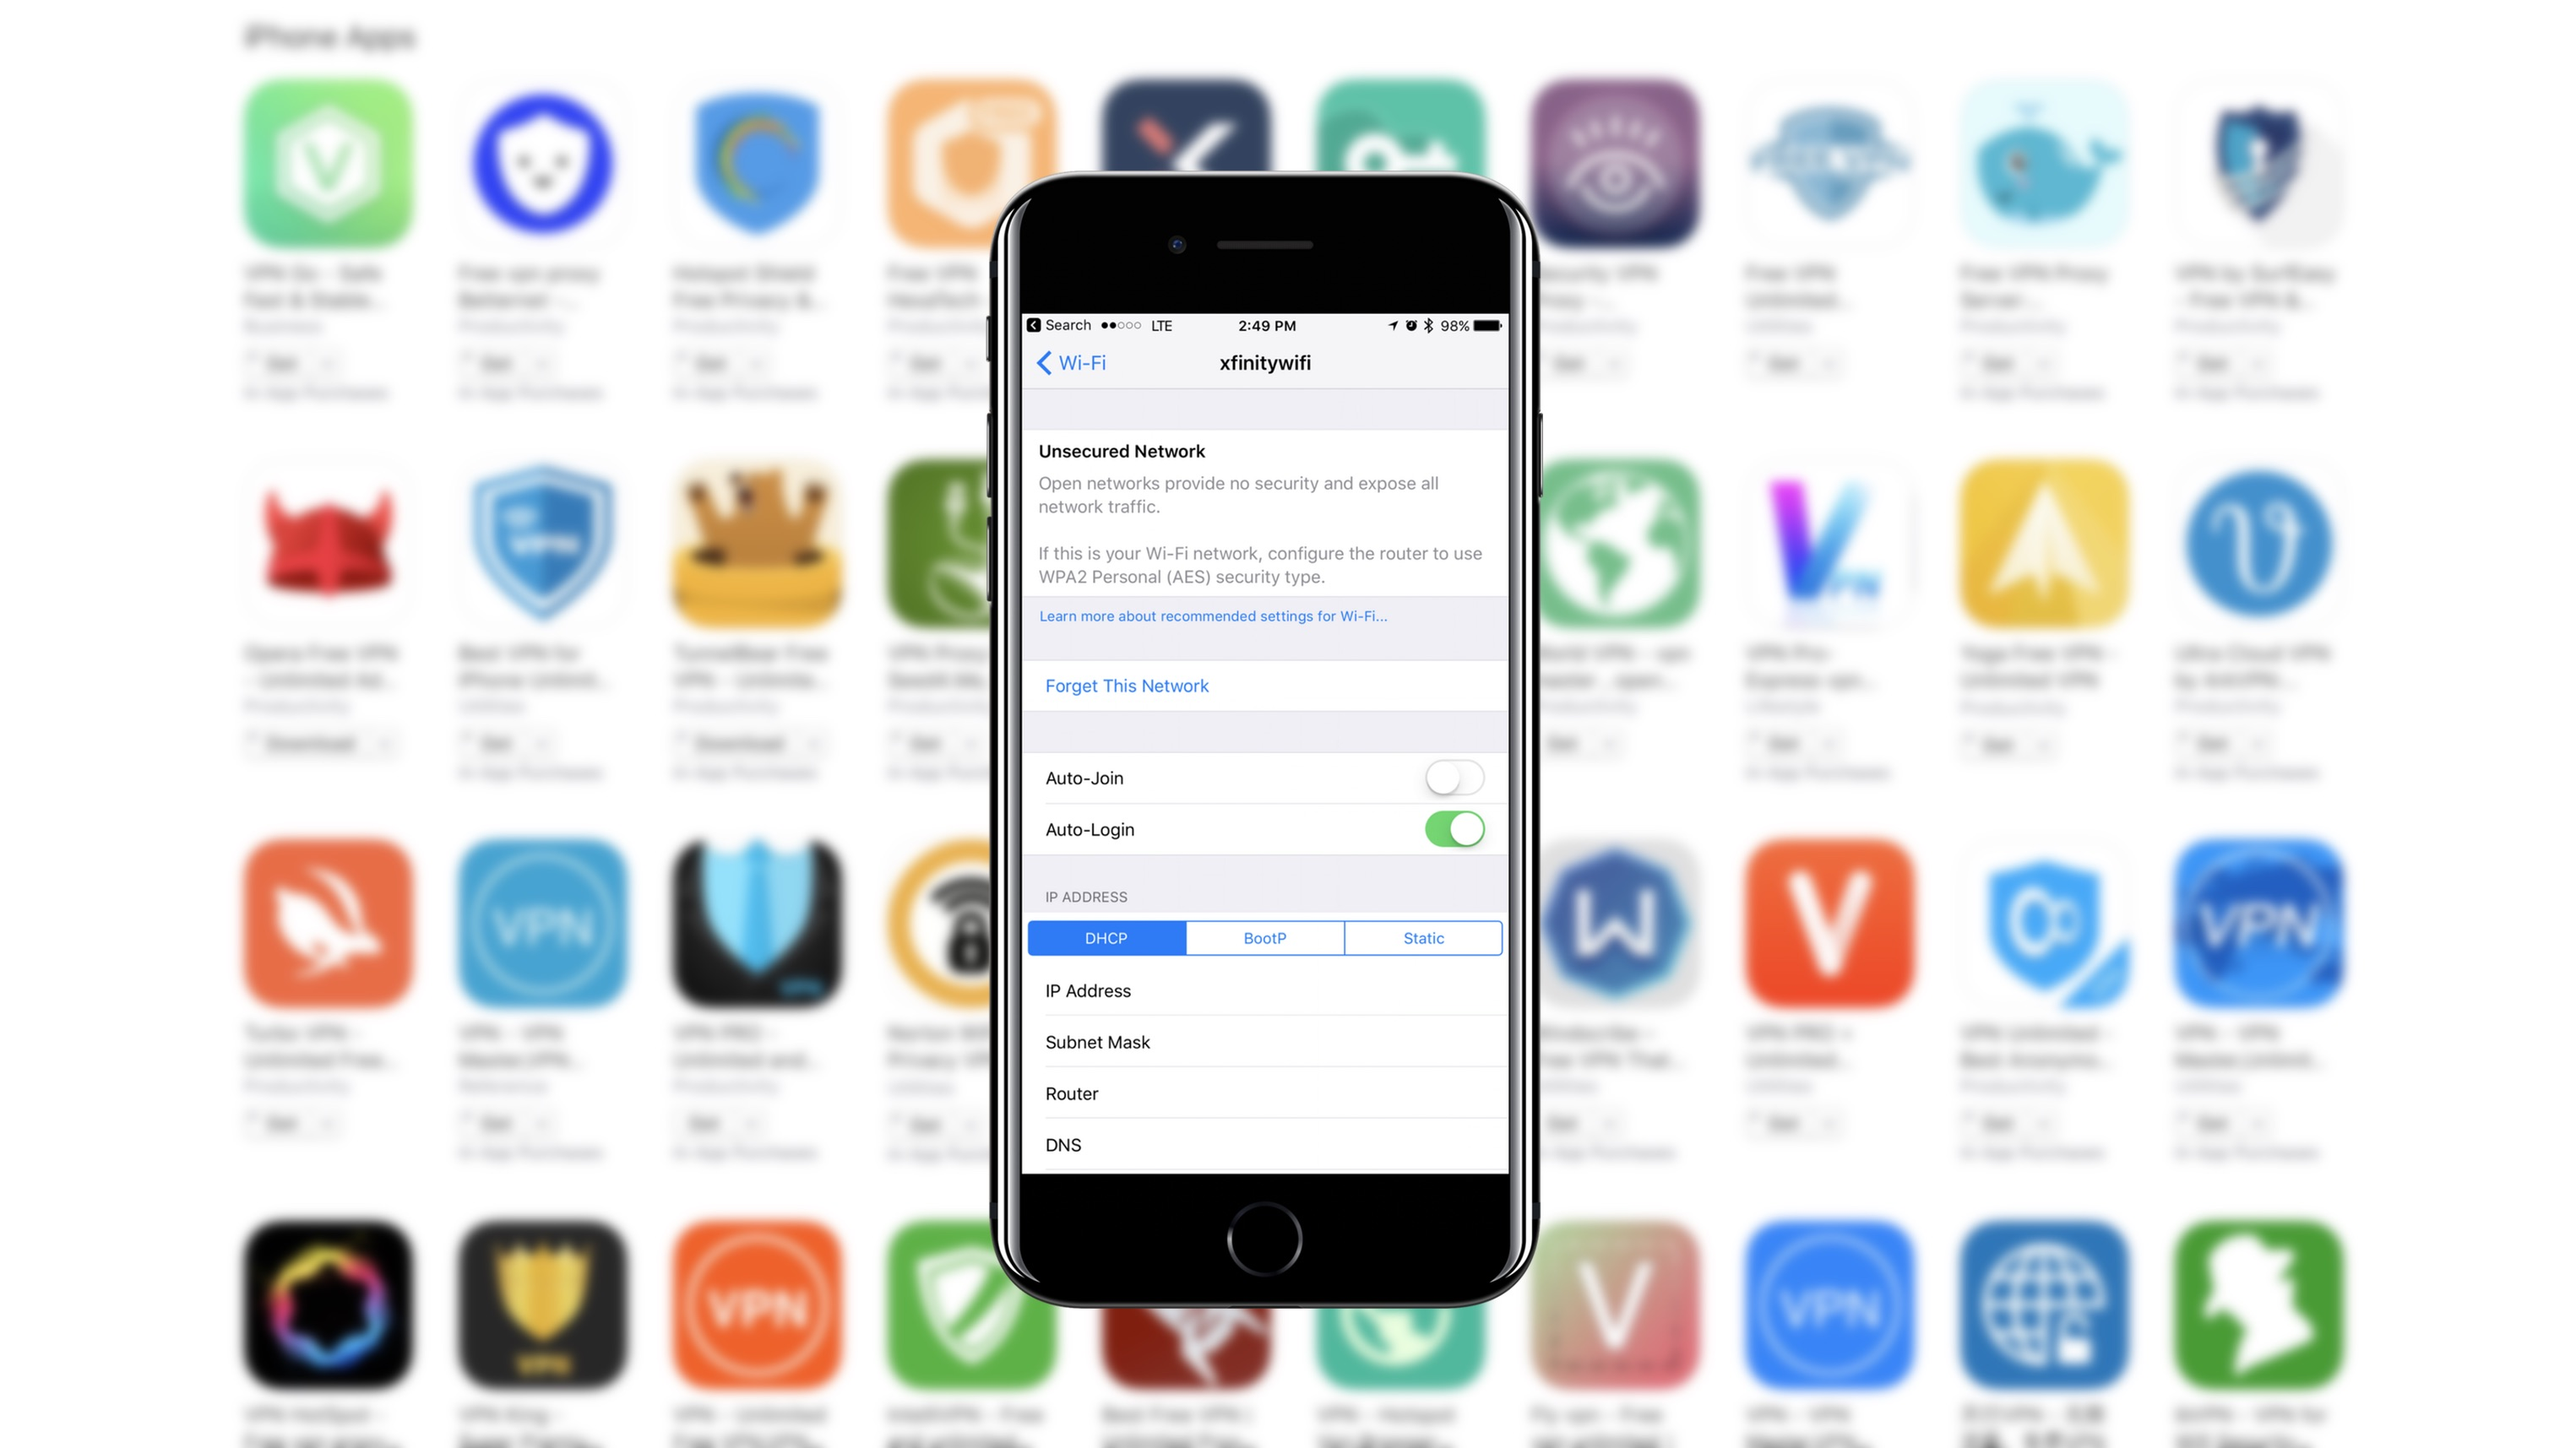 iOS App Store VPN apps